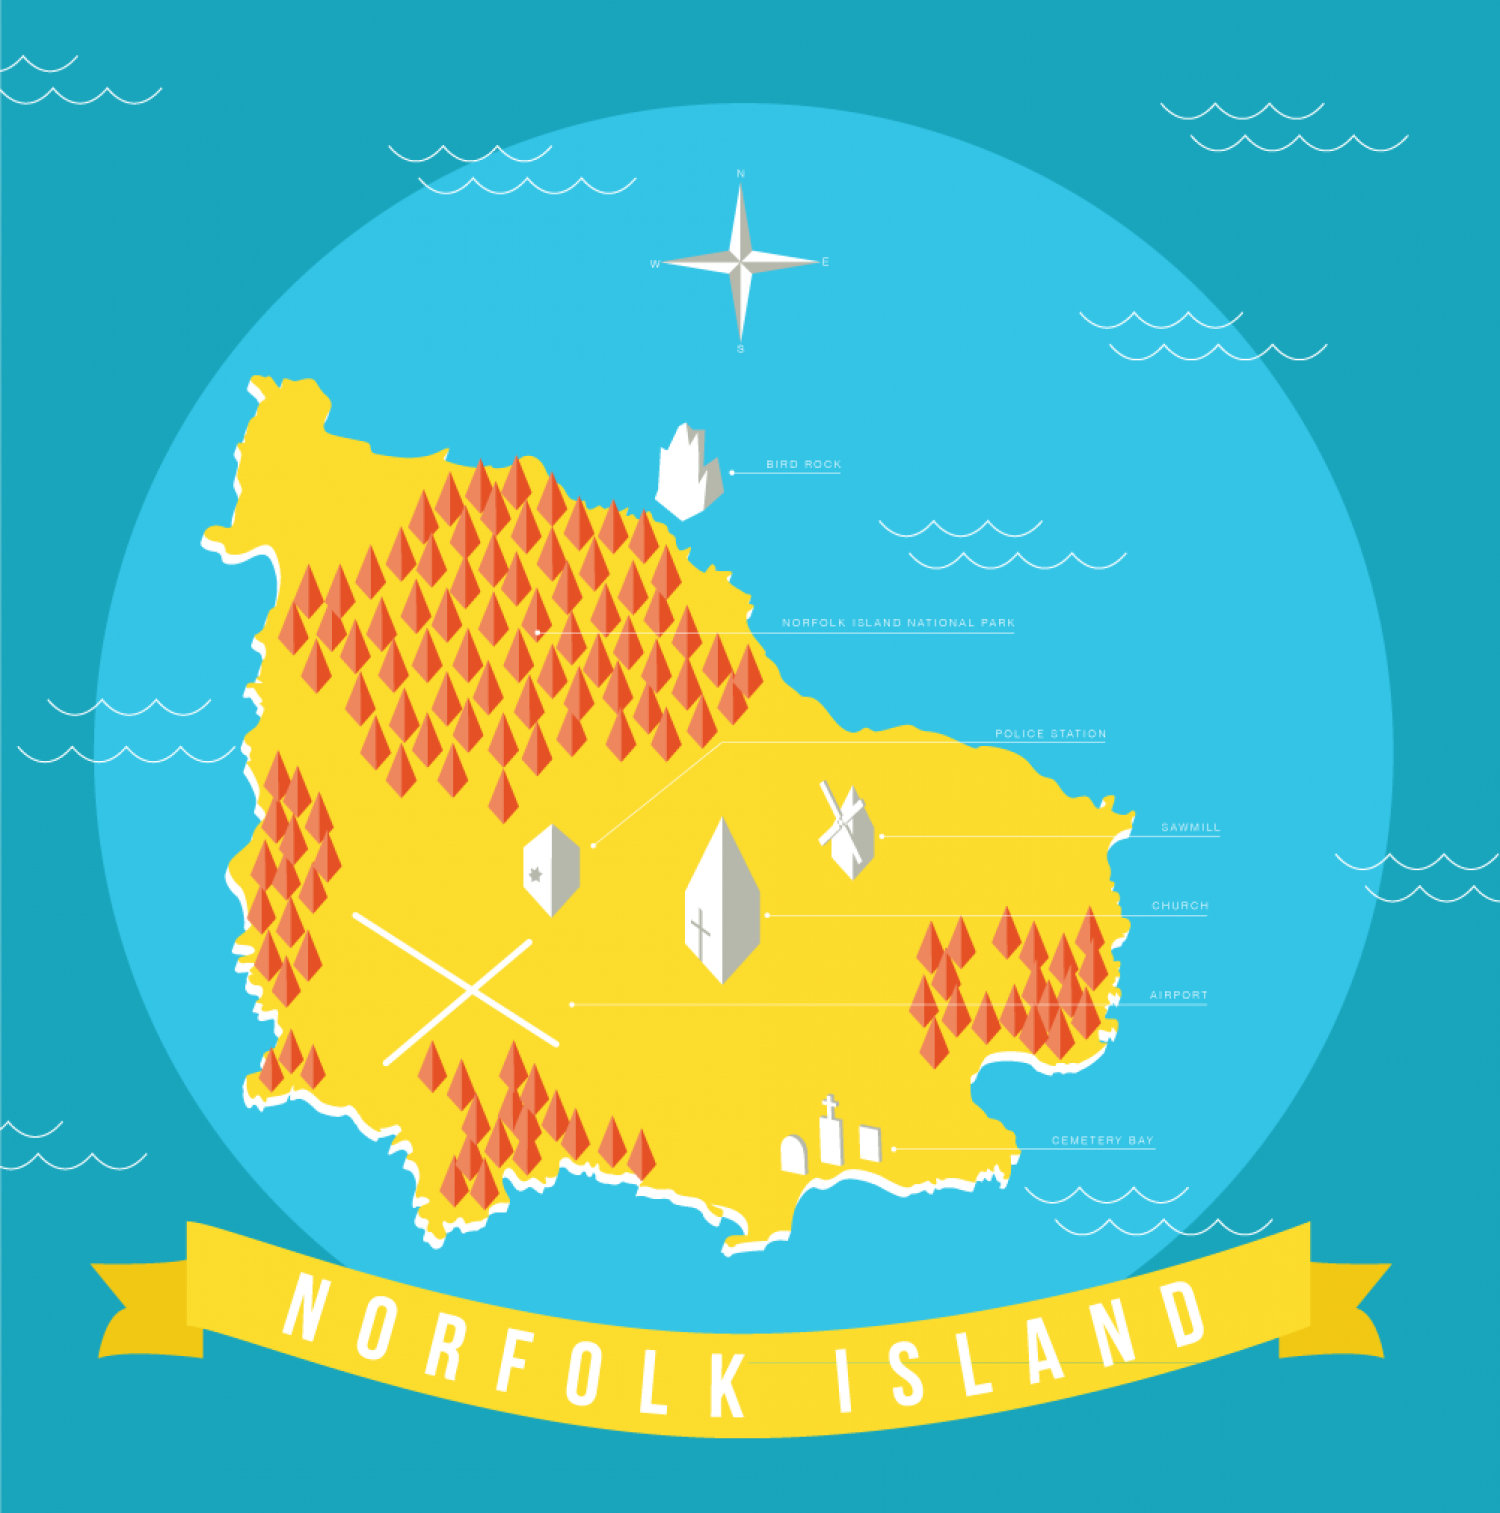 Norfolk Island Infographic